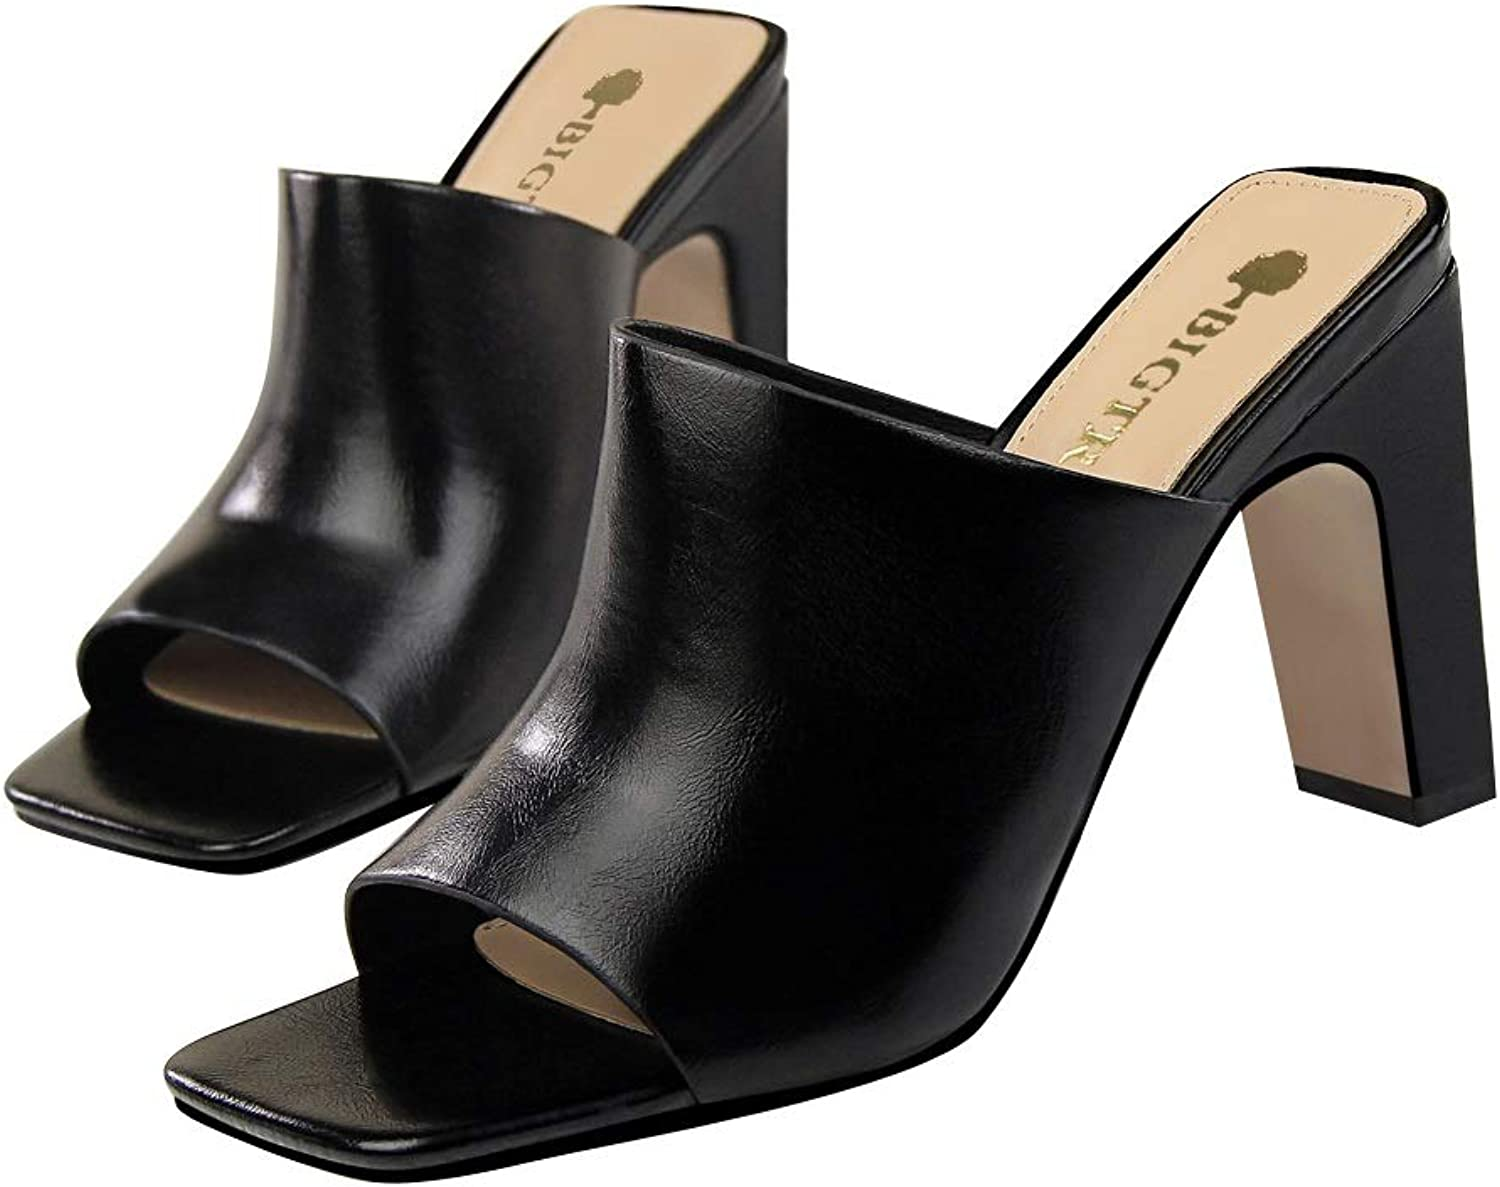 Women's High Heel Sandals, Peep Thick Heel Leather Square Head Fish Mouth Fashion Sandals And Slippers